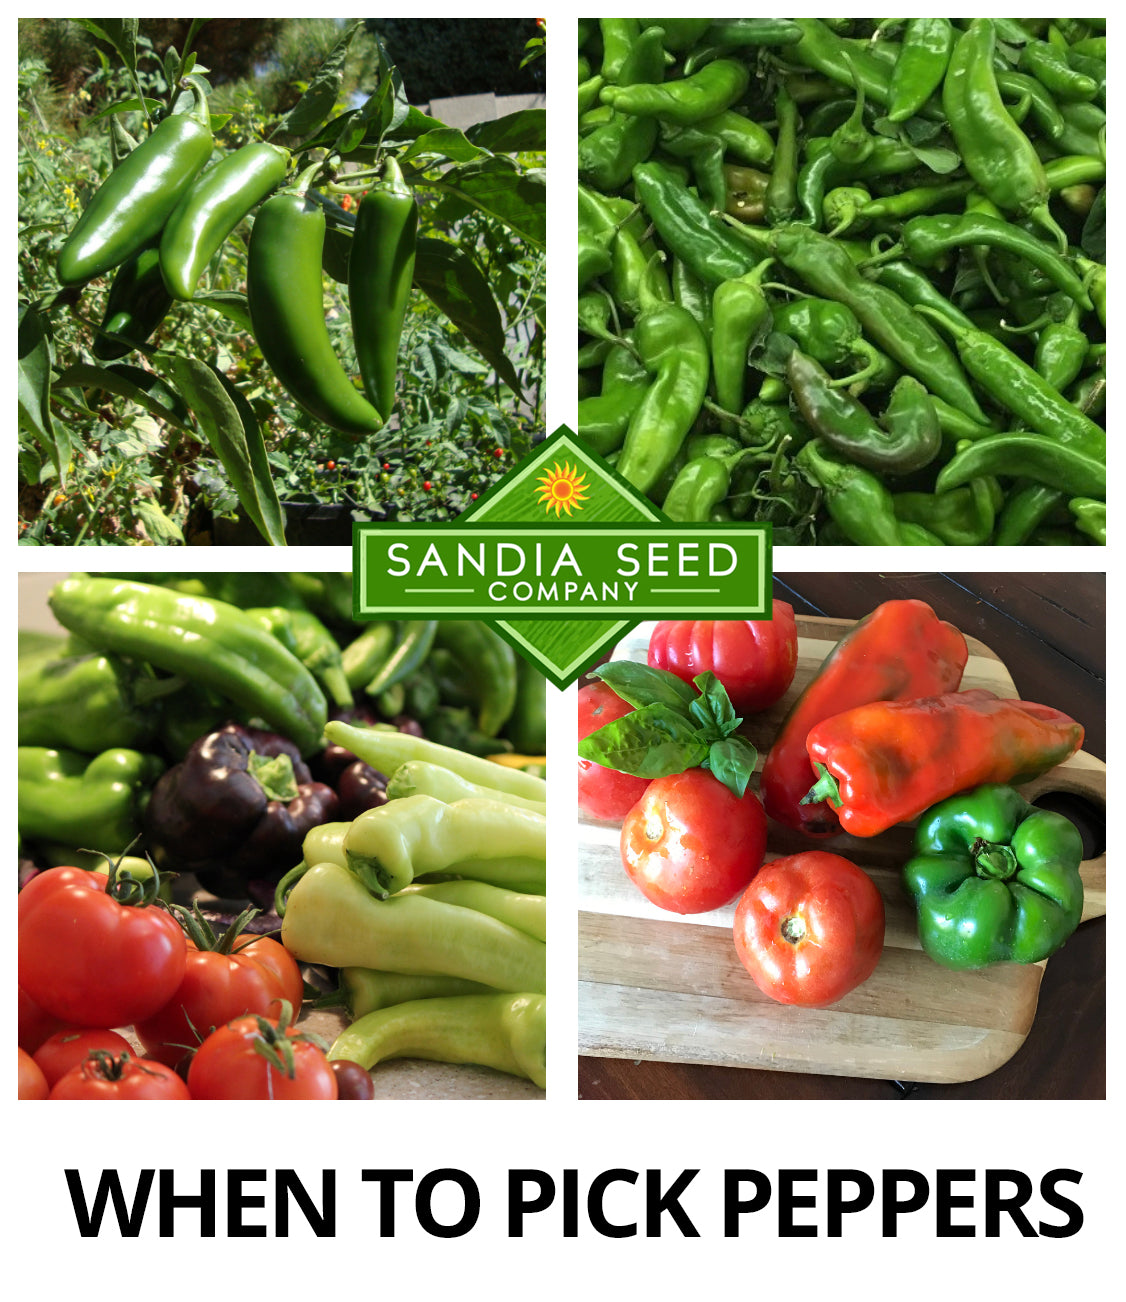 When to Pick Peppers